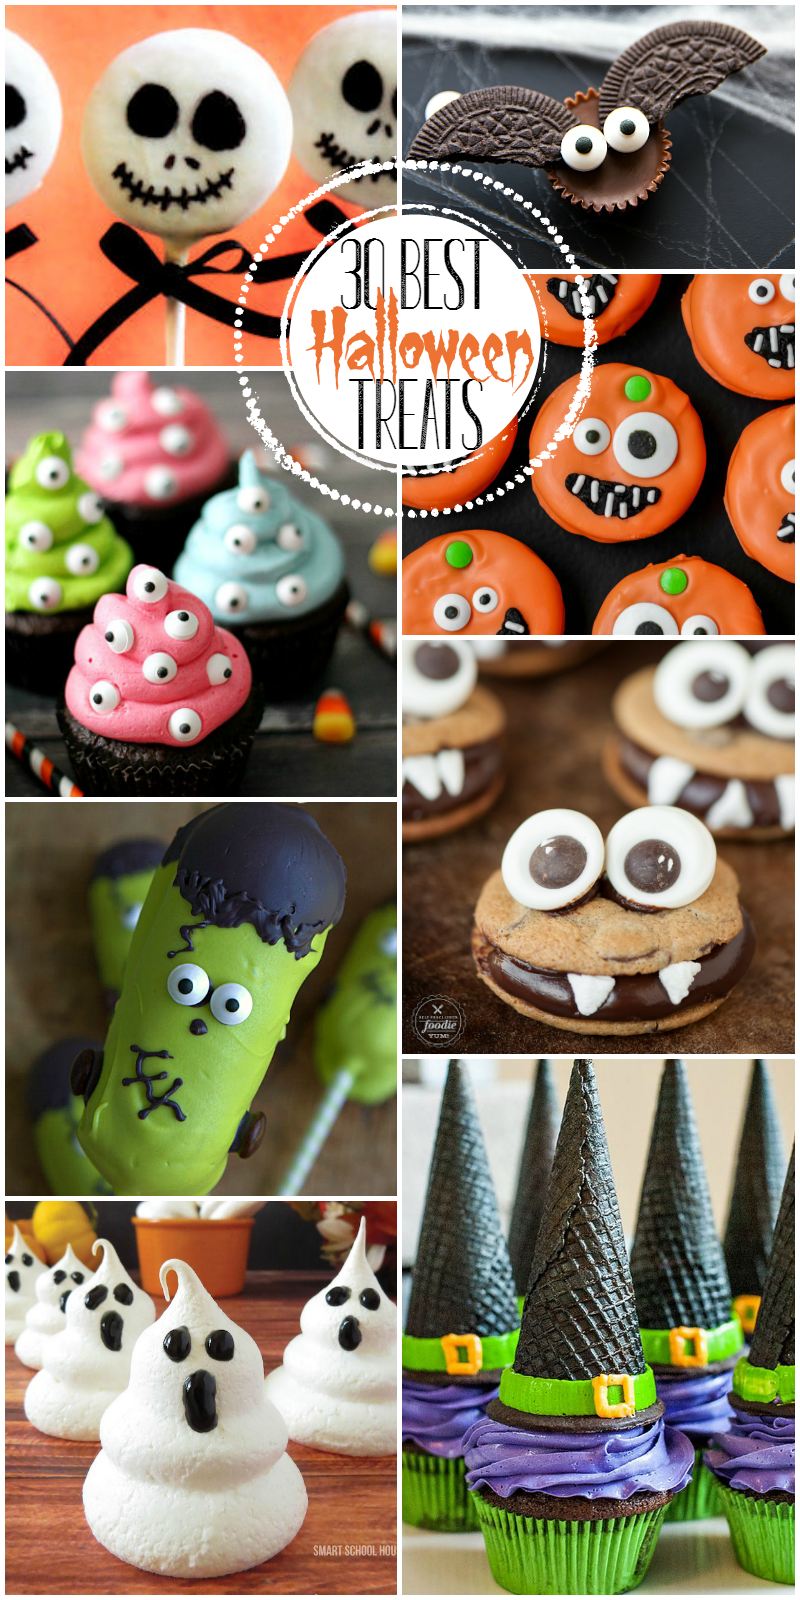 Best Halloween Party Desserts.30 Best Halloween Treats From Spooky To Adorable These Treats And Desserts Are Perfect For Par Halloween Treats Halloween School Treats Fun Halloween Treats